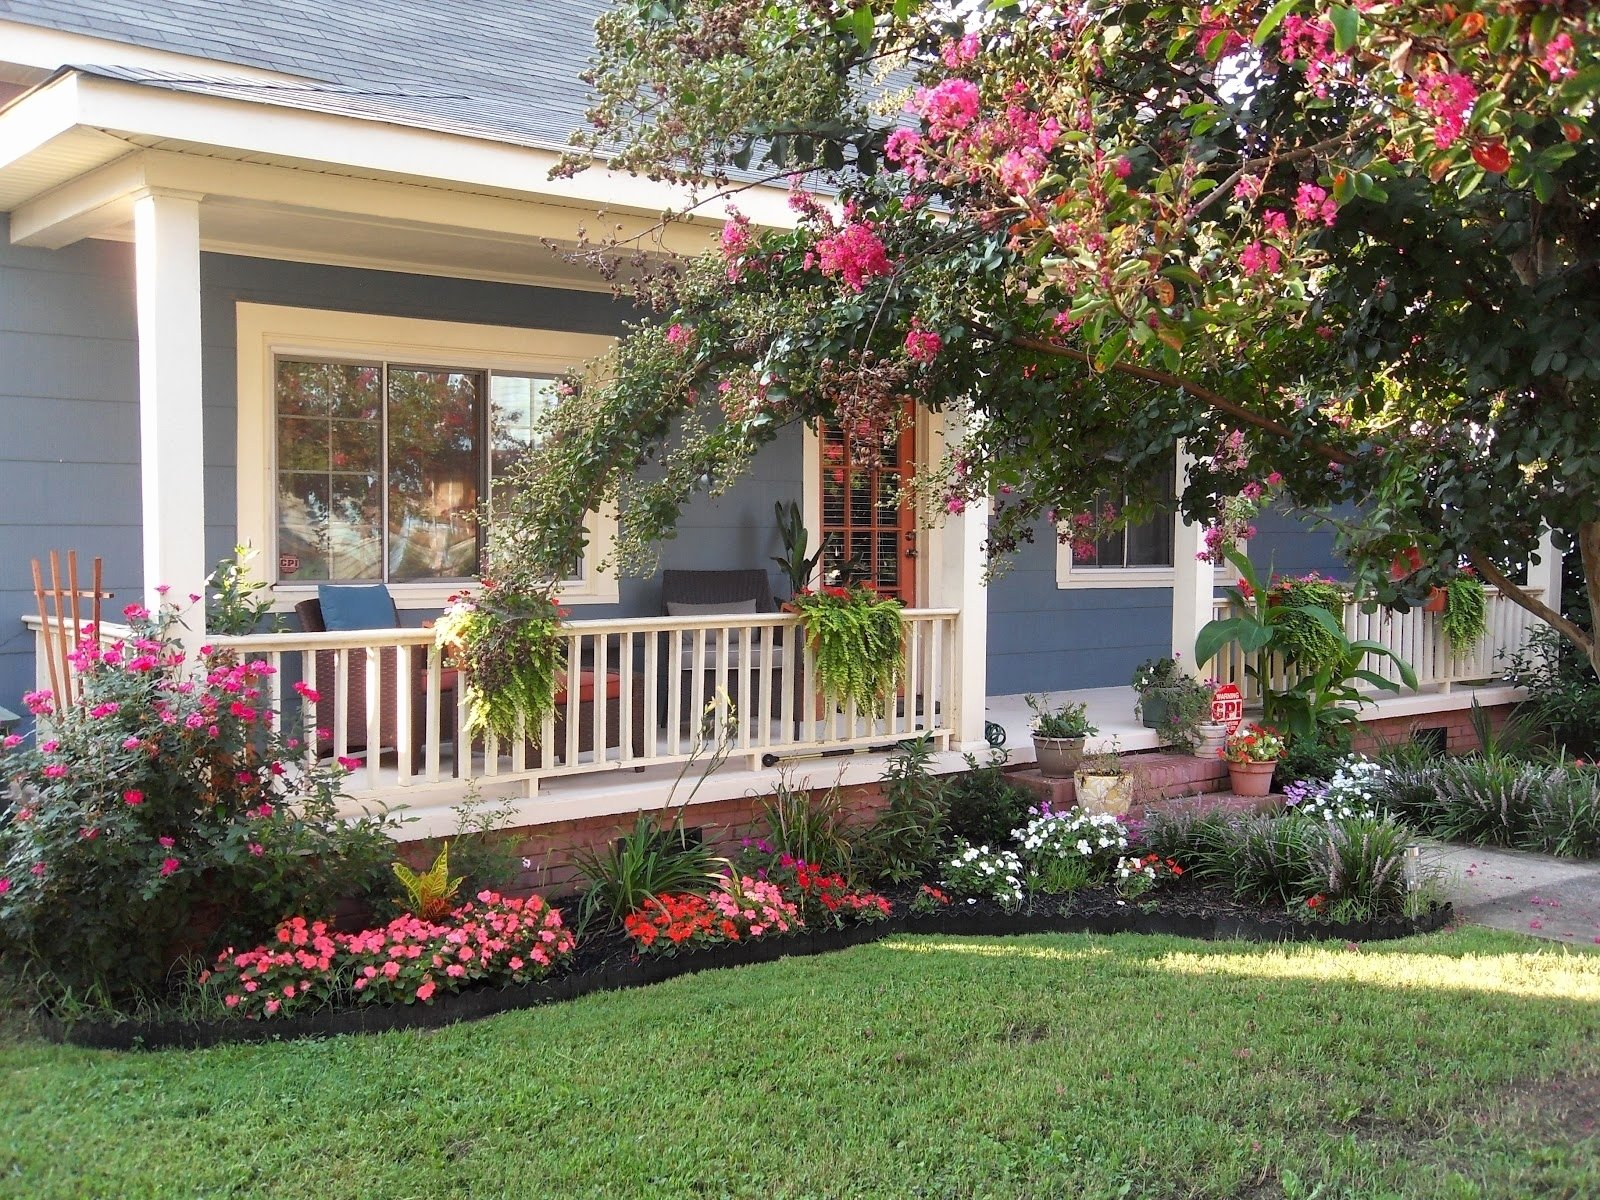 10 Trendy Simple Front Yard Landscaping Ideas approved simple front yard landscaping ideas picture 37 of 46 2020